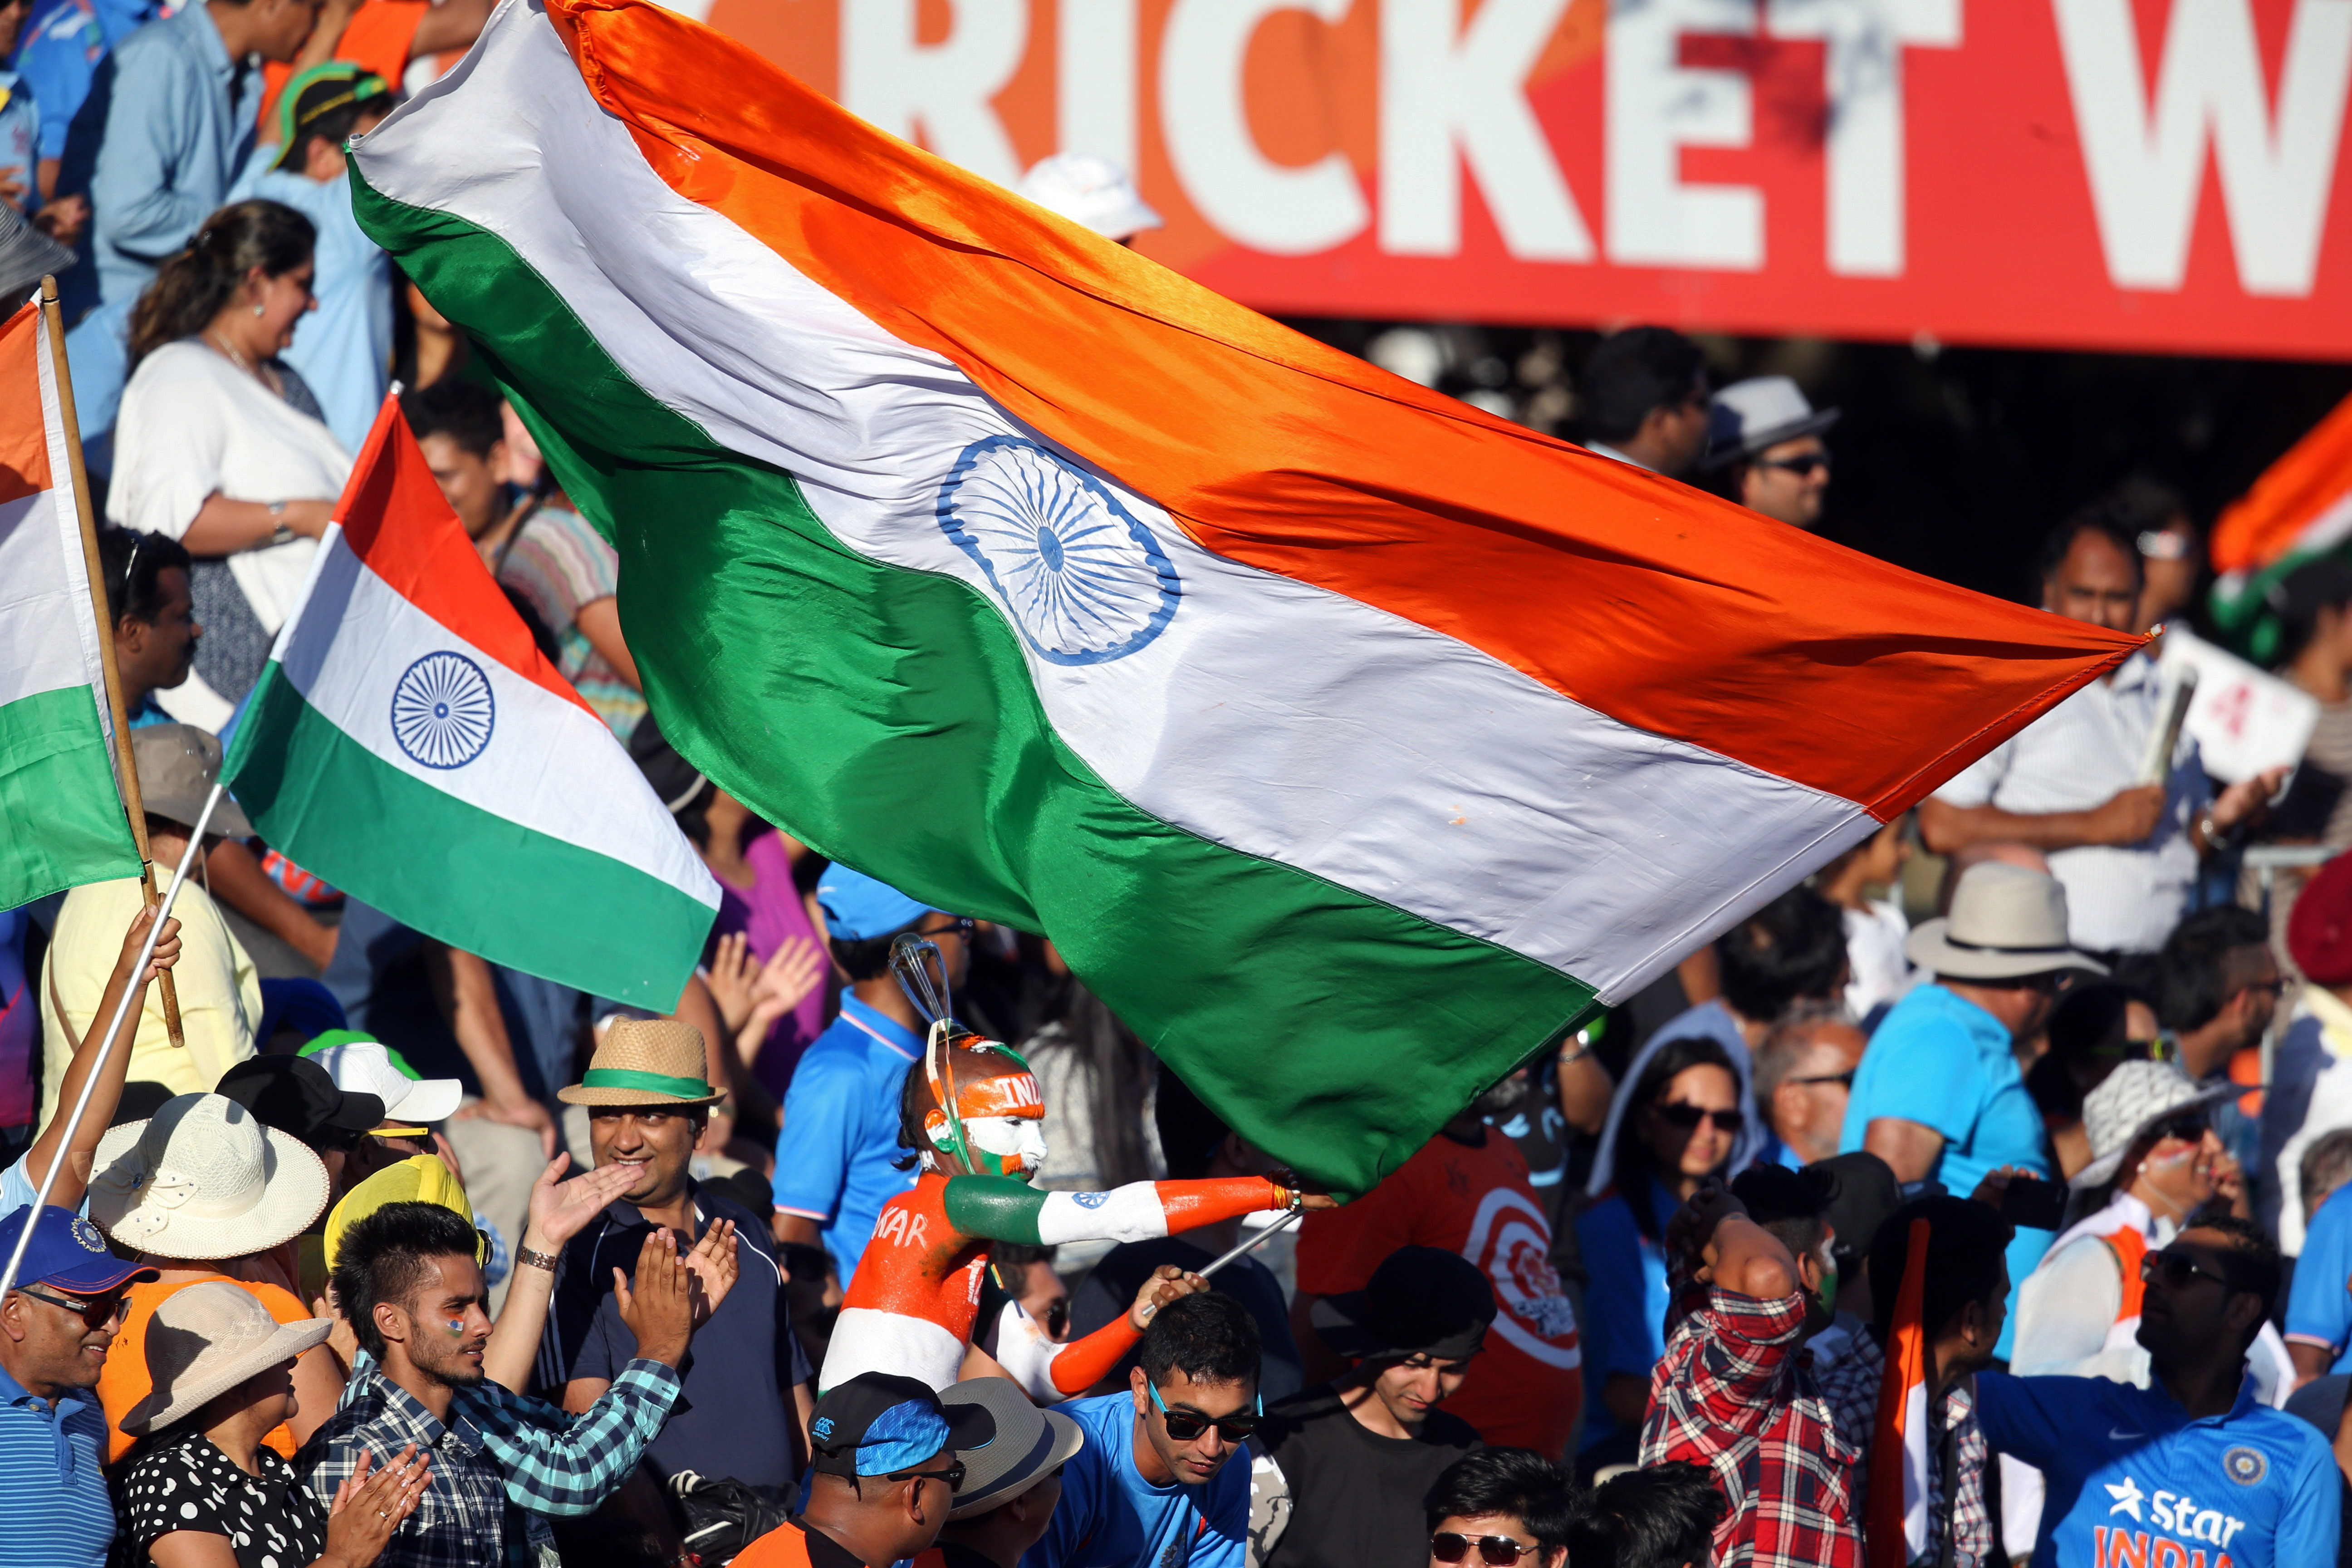 India fans wave their national flags during the Pool B Cricket World Cup match between India and Ireland at Sedden Park in Hamilton on March 10, 2015.